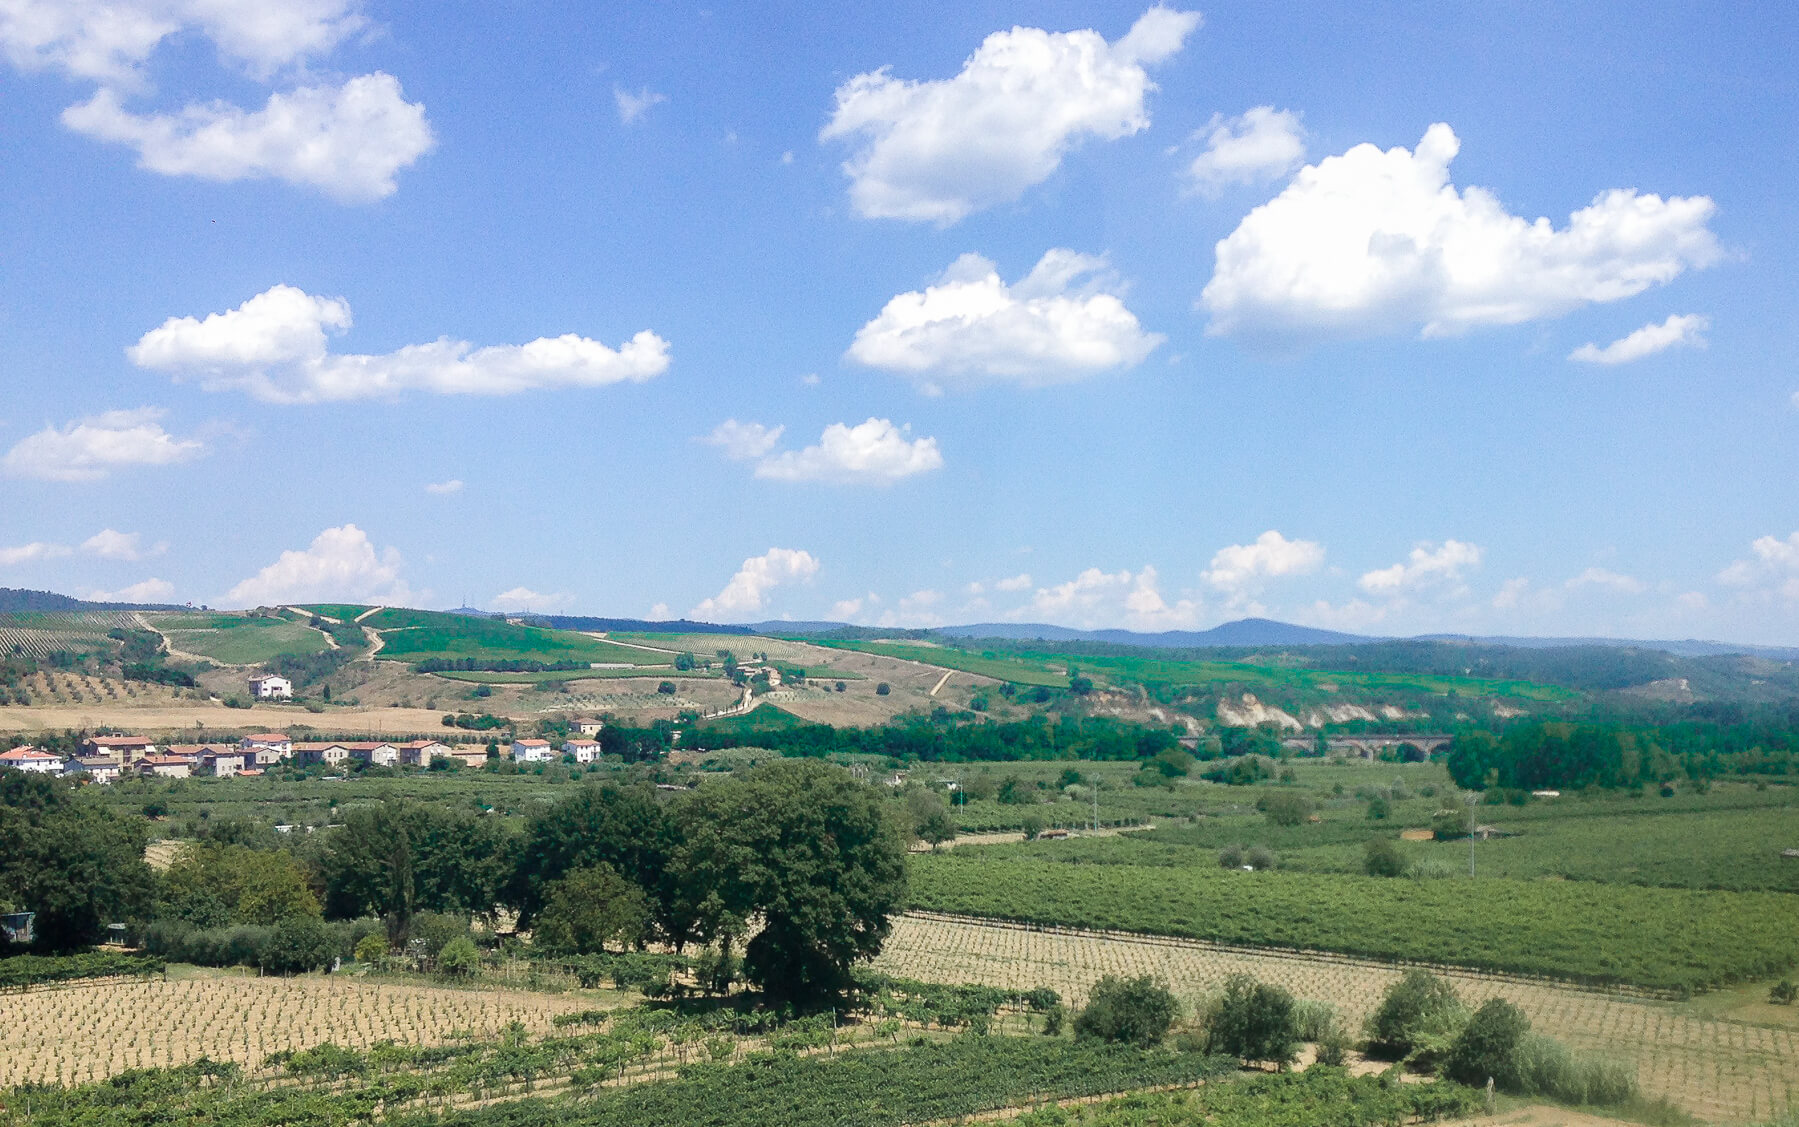 Italian country side from the view of a Train